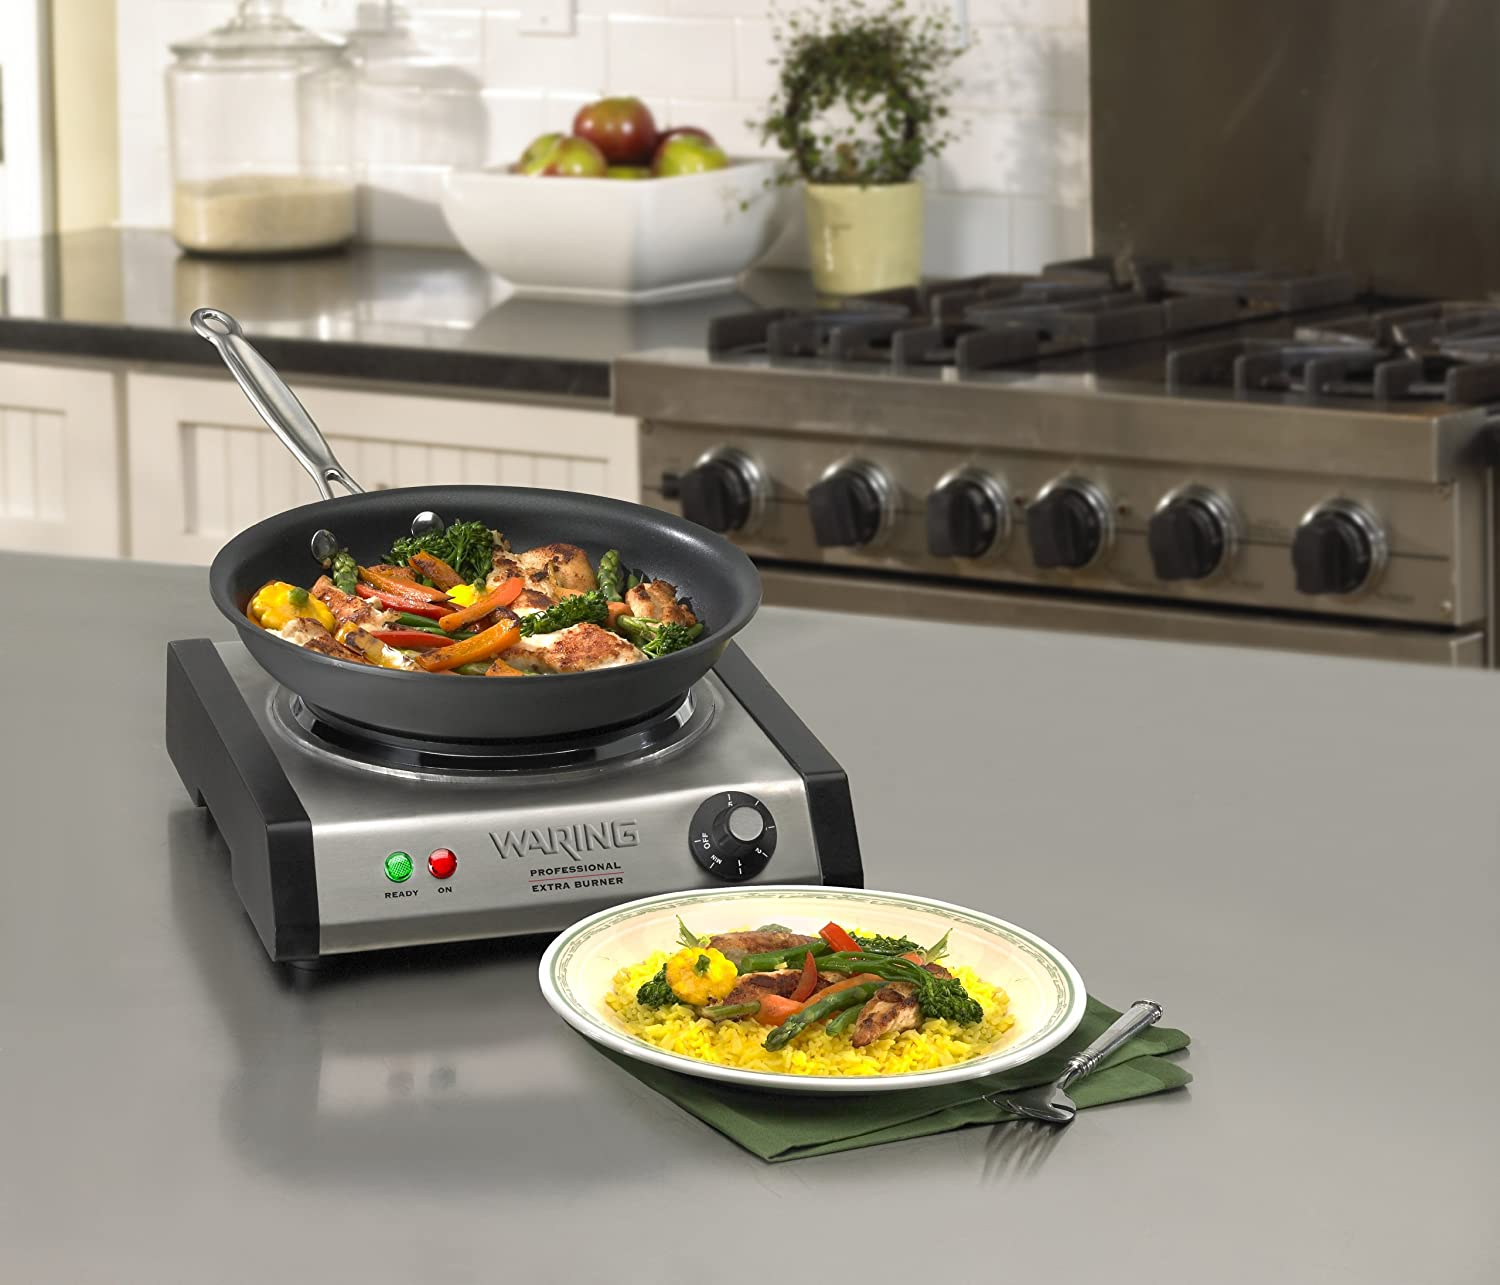 Best Electric Hot Plate for Camping